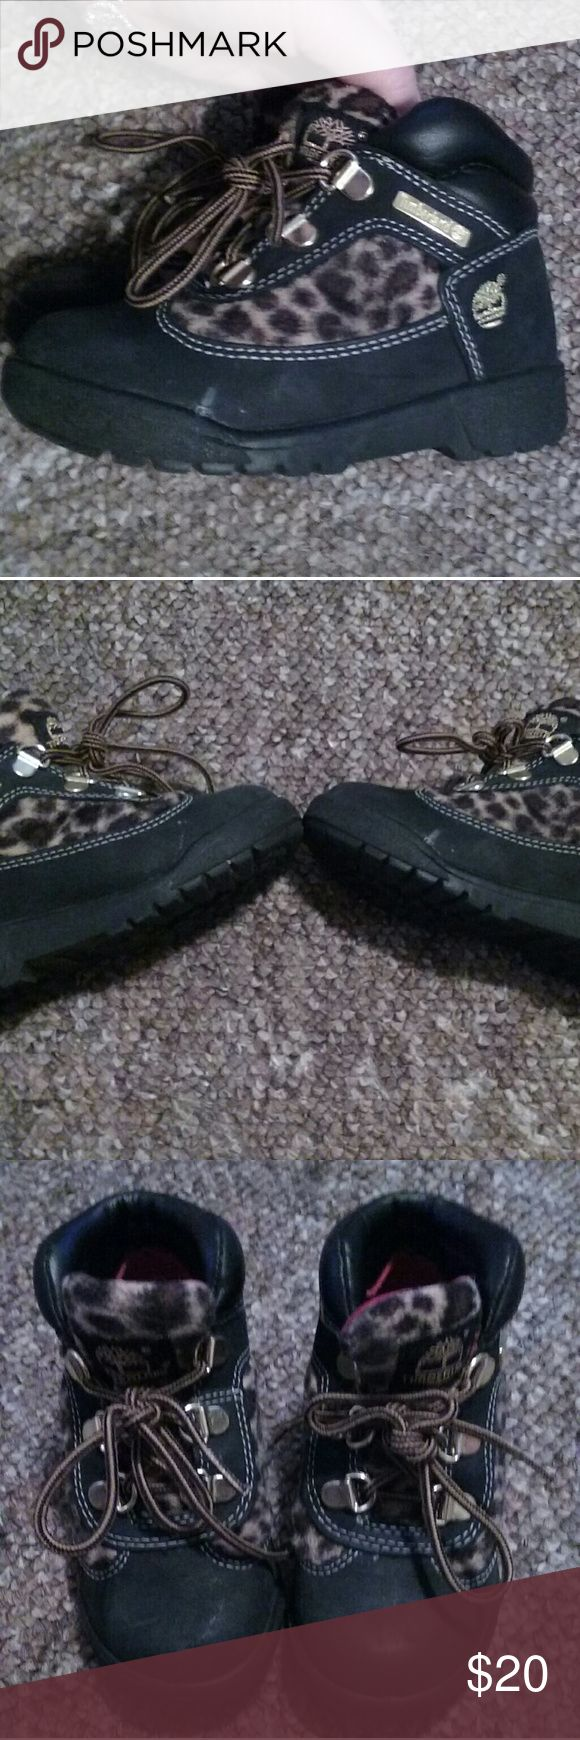 Toddler Timberland boots In great condition Timberland Shoes Boots